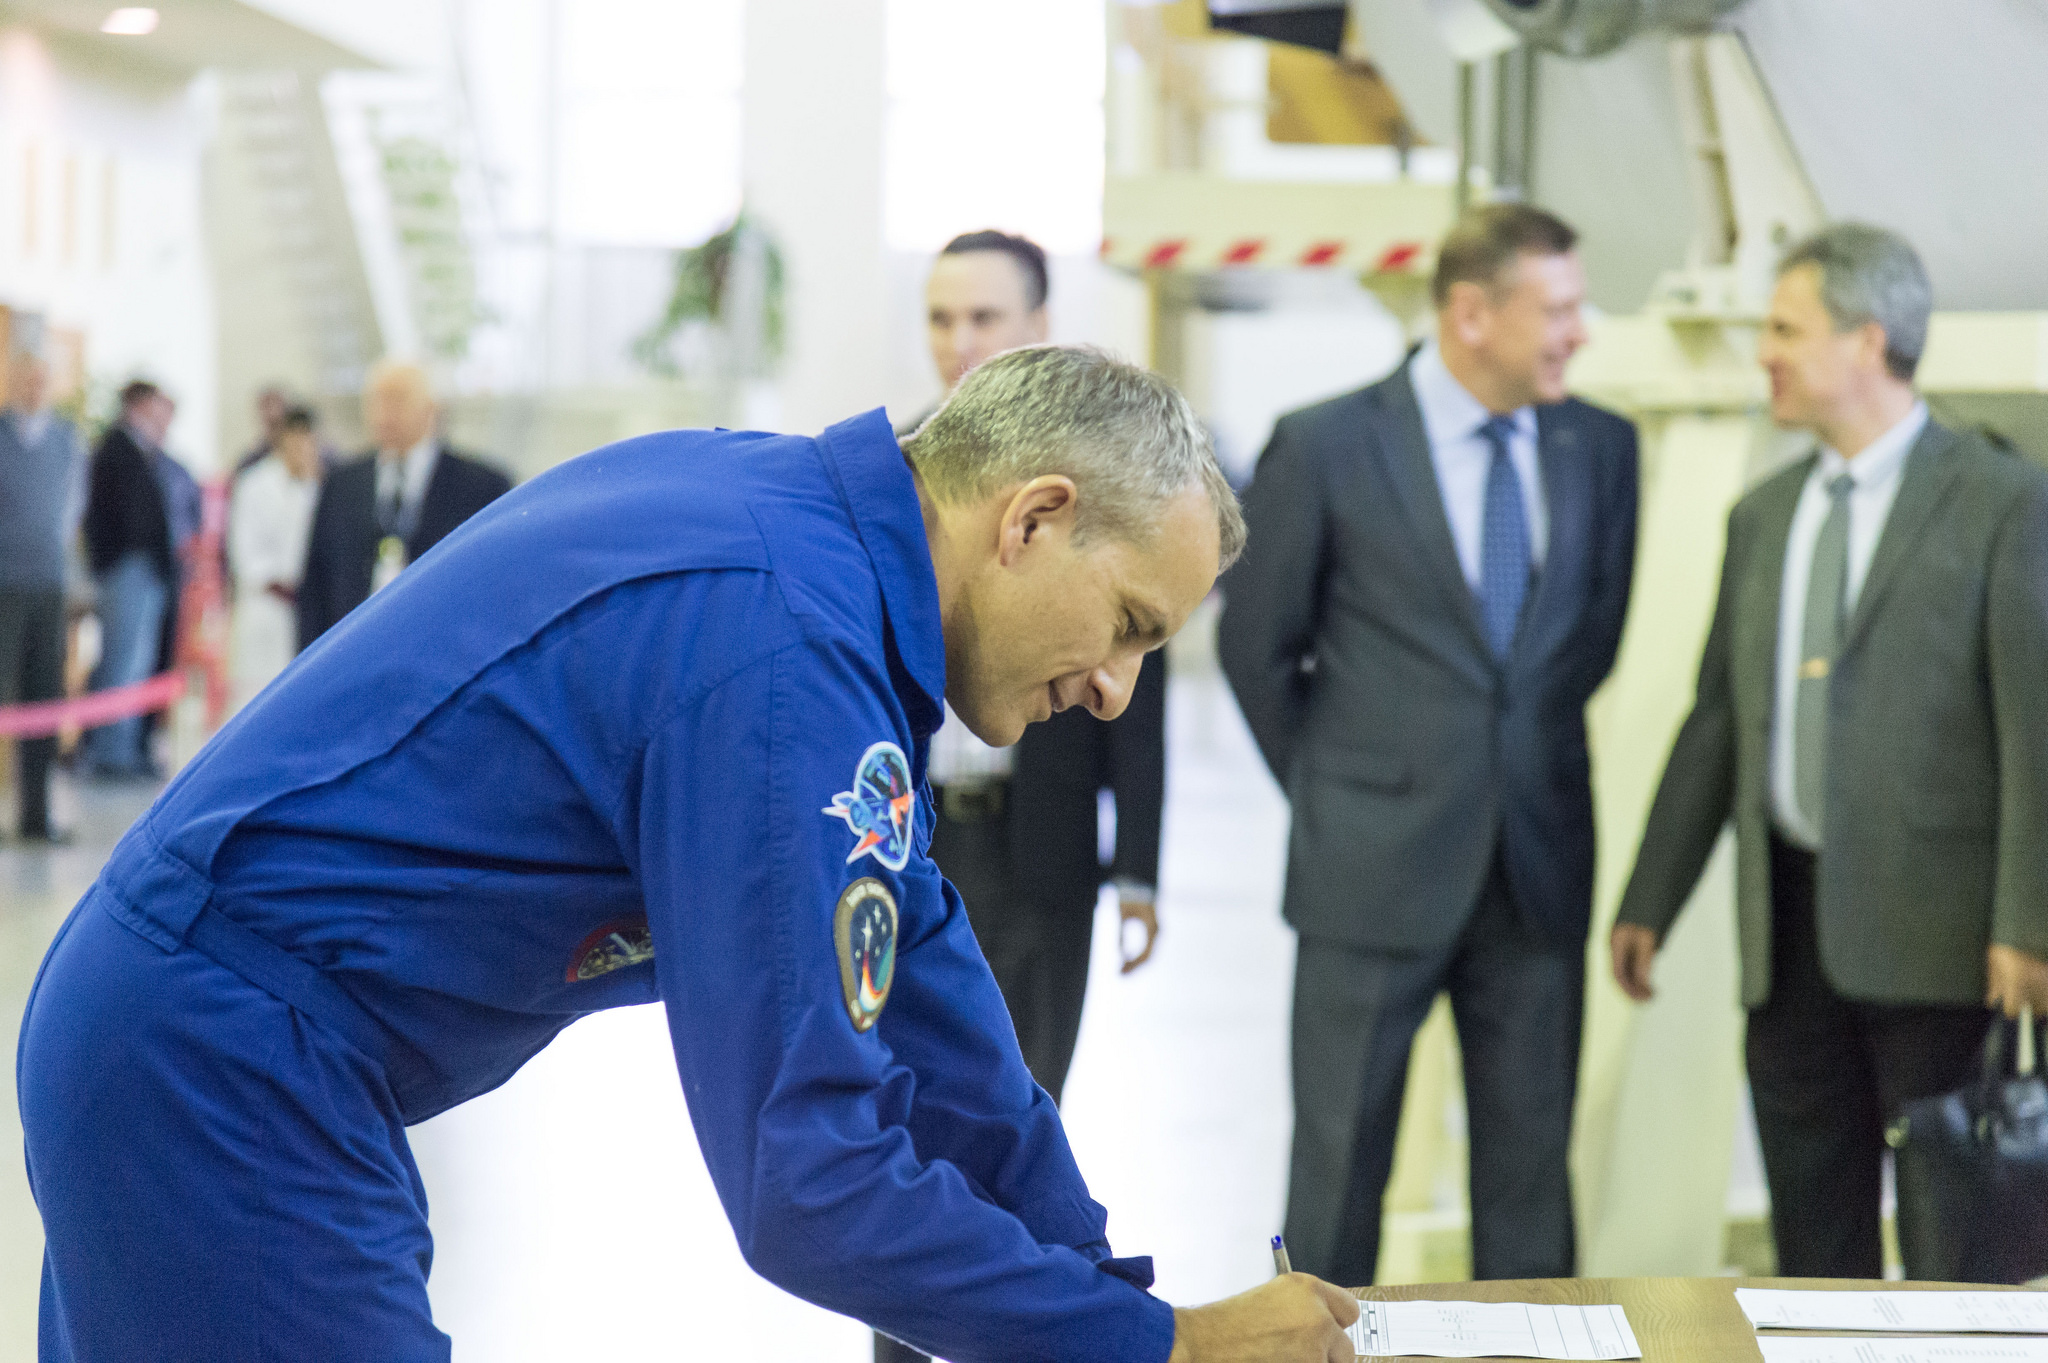 At the Gagarin Cosmonaut Training Center in Star City, Russia, Expedition 58 crew member David Saint-Jacques of the Canadian Space Agency signs in for his qualification exams Nov. 13. Saint-Jacques, Anne McClain of NASA and Oleg Kononenko of Roscosmos will launch Dec. 3 on the Soyuz MS-11 spacecraft from the Baikonur Cosmodrome in Kazakhstan for a six-and-a-half month mission on the International Space Station